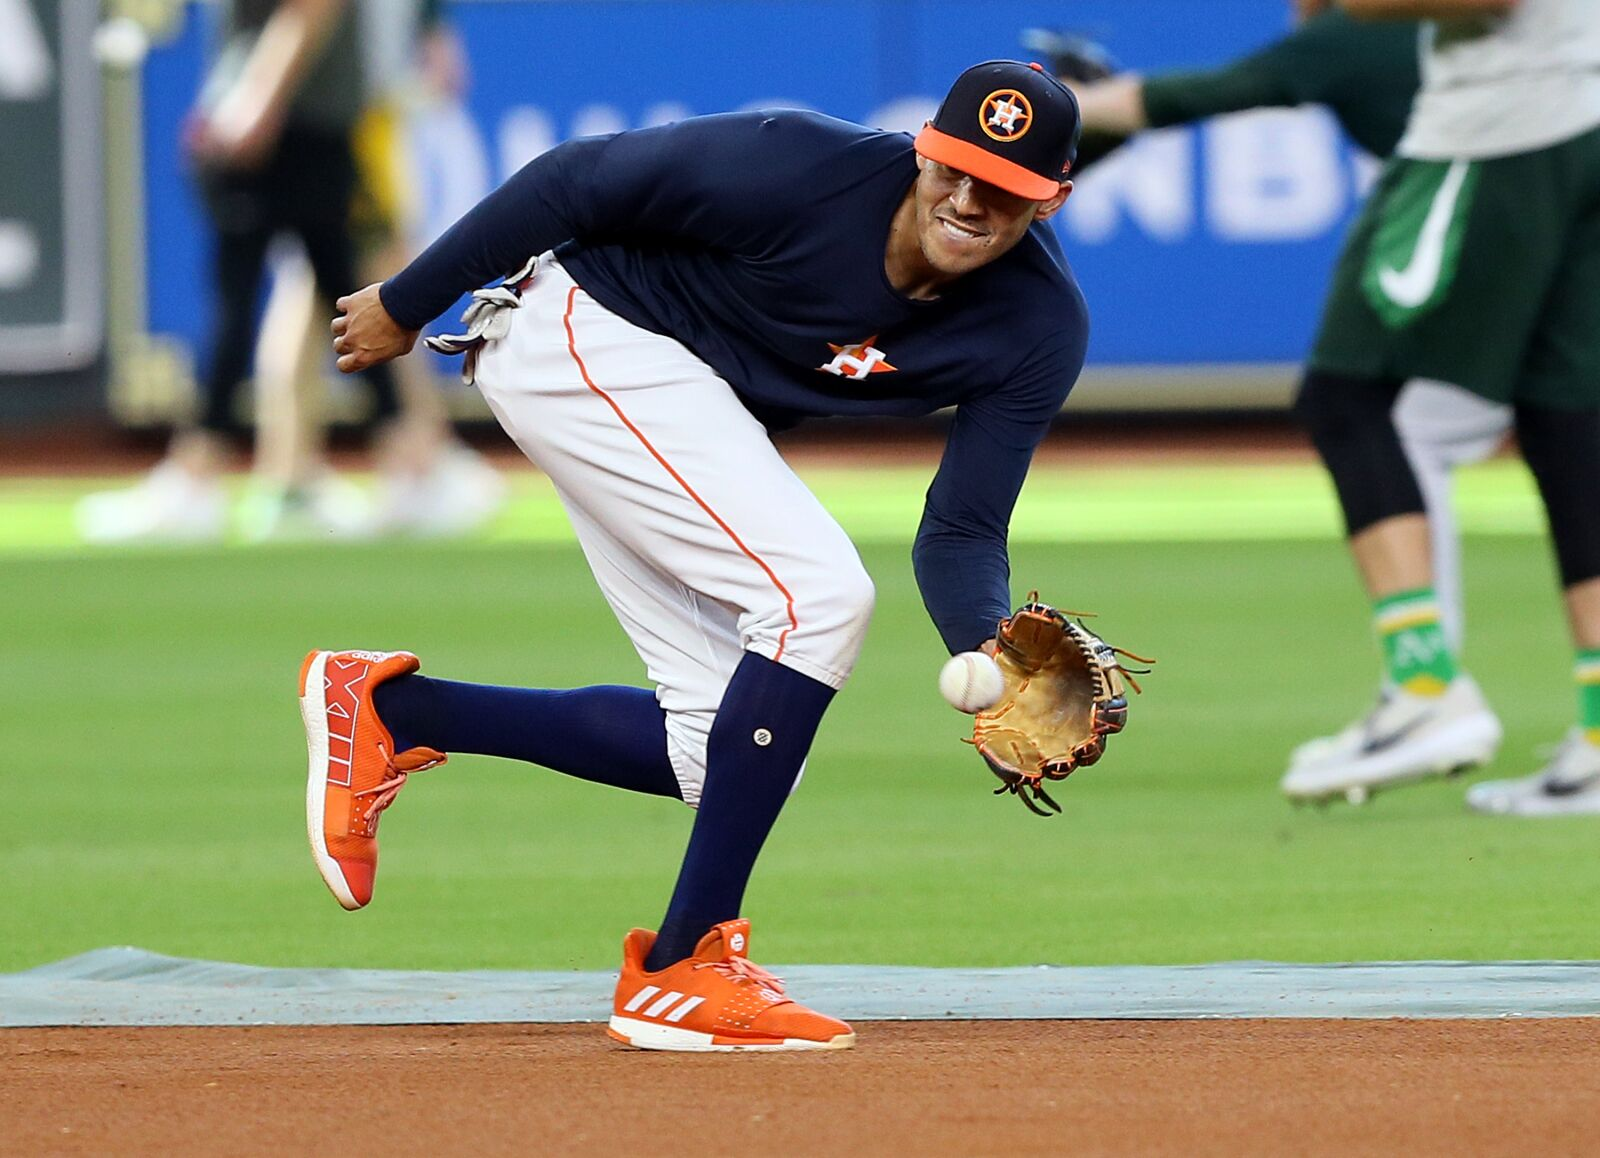 Astros: Carlos Correa on pace for rehab assignment Friday